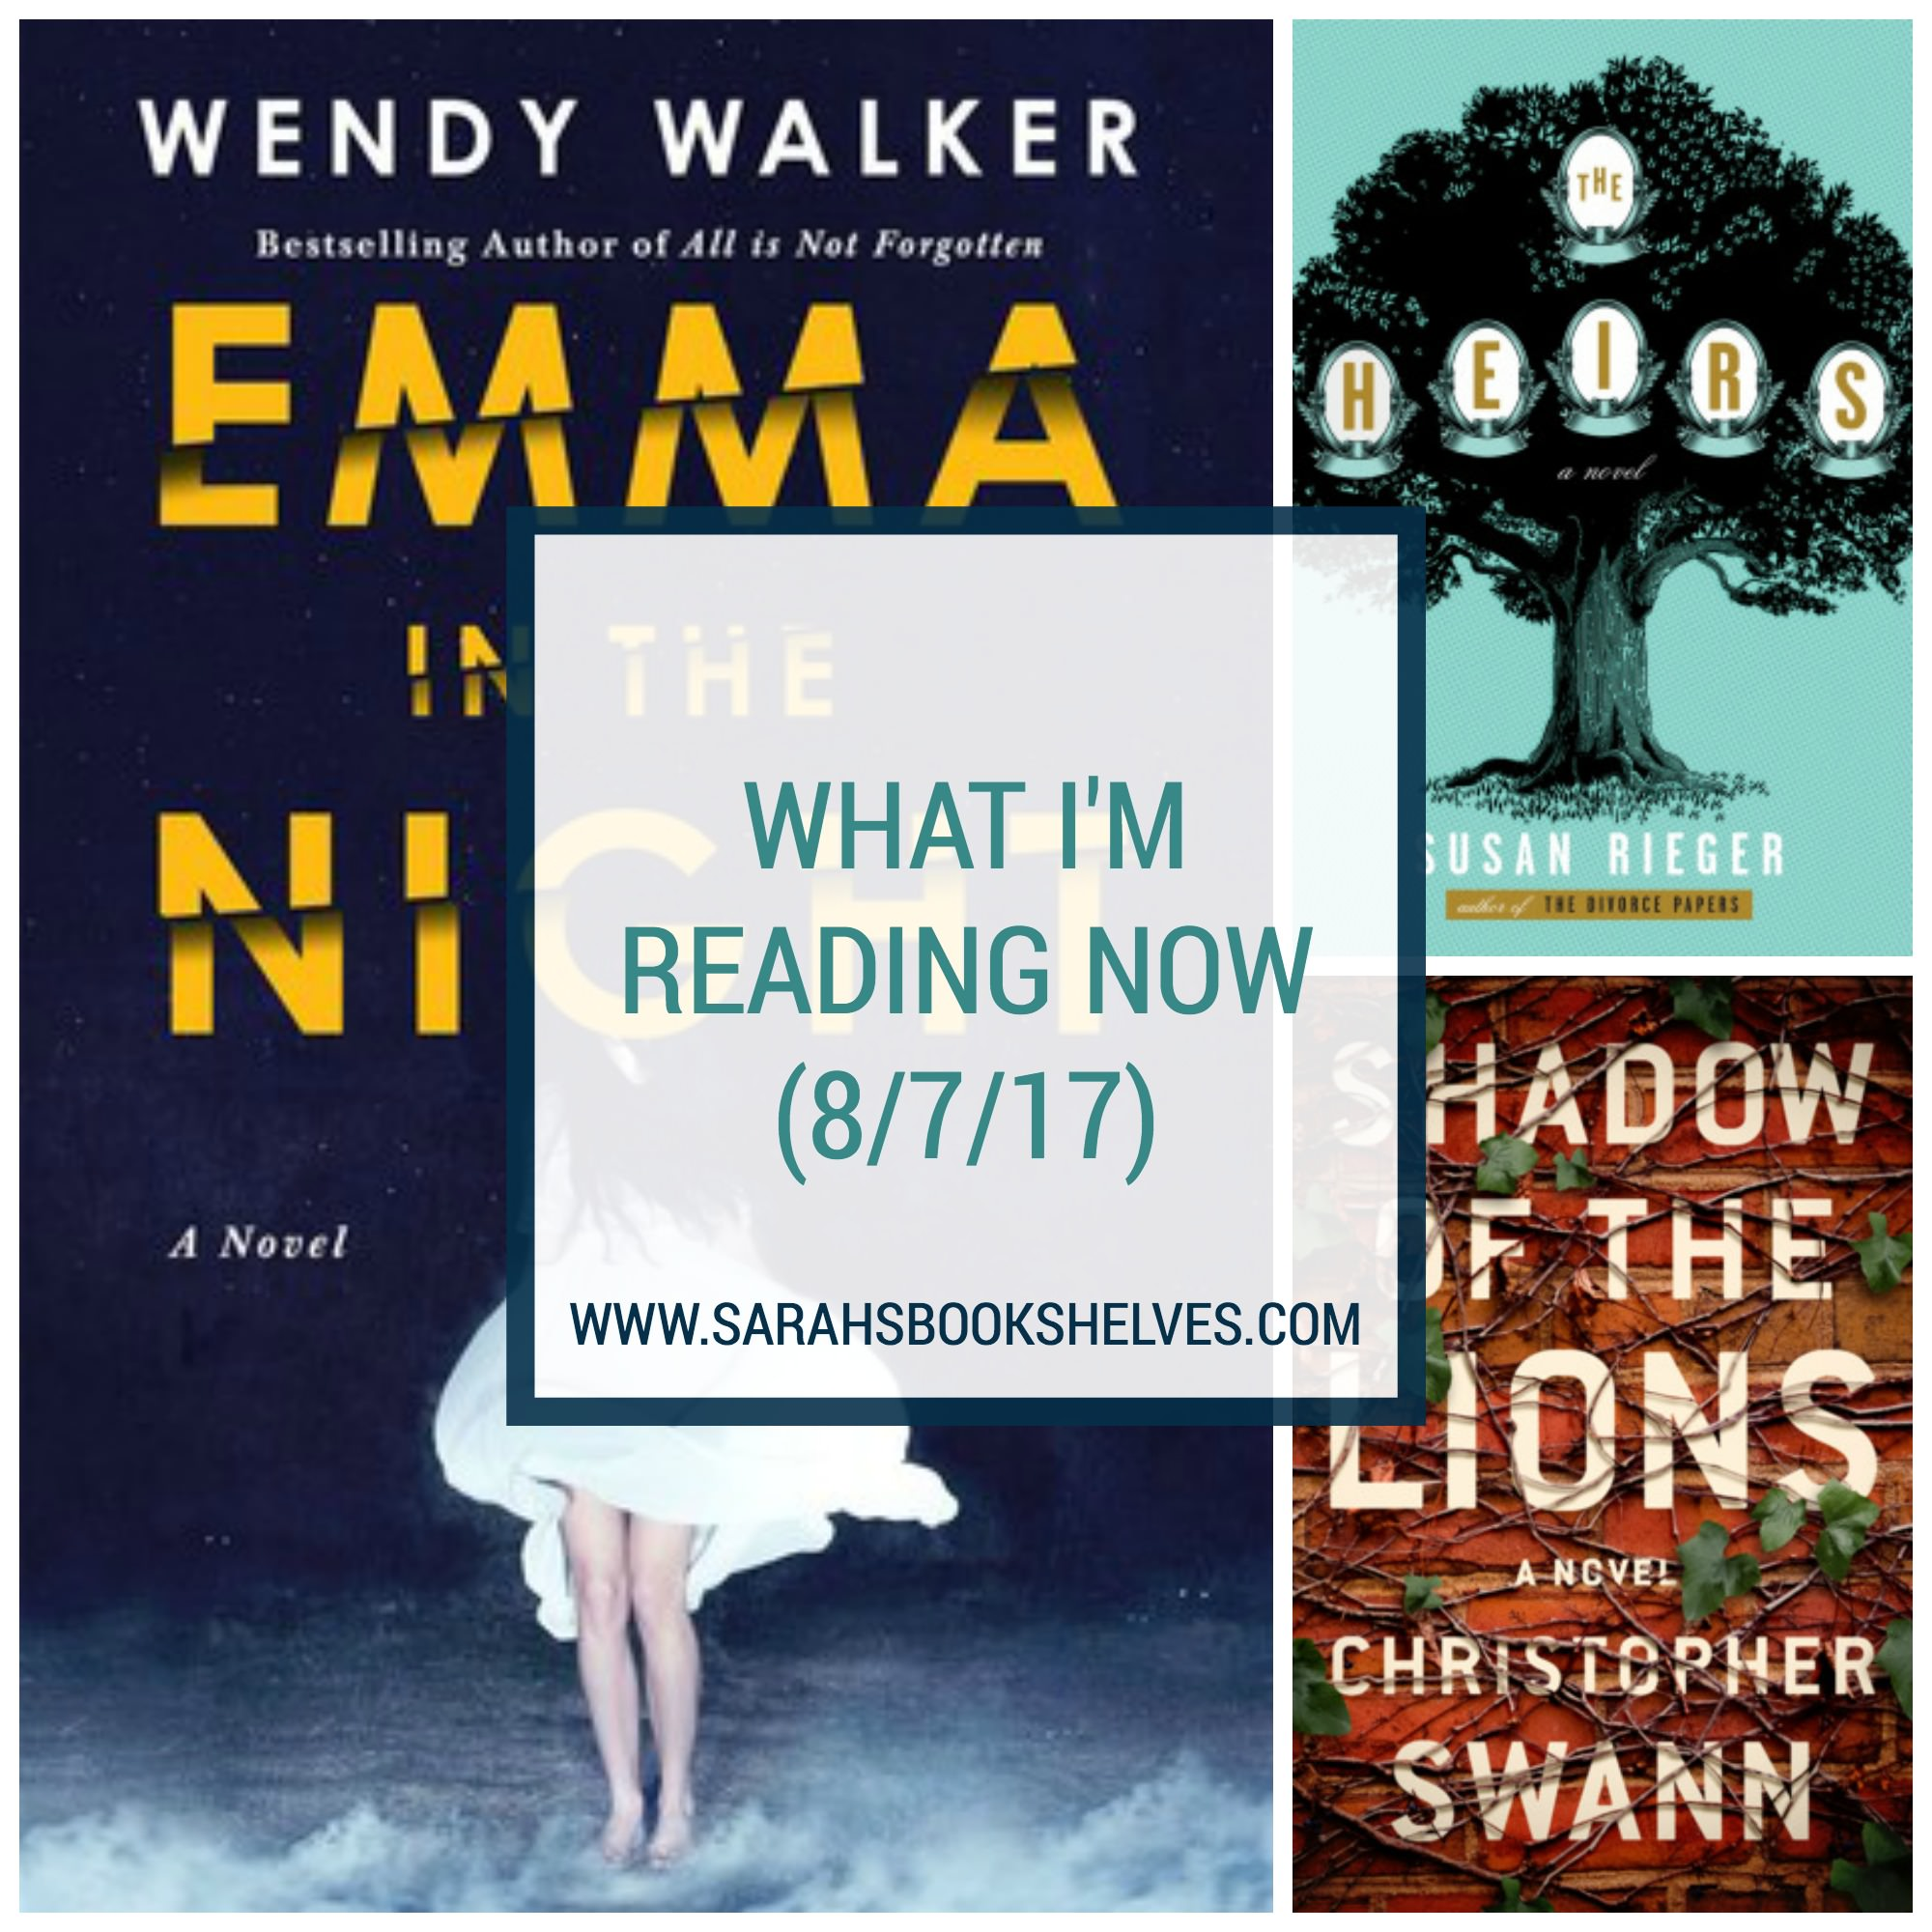 What I'm Reading Now (8/7/17): I've got 3 fantastic summer books for your final vacation! Emma in the Night is the best thriller I've read since Gone Girl, Shadow of the Lions is an intriguing campus mystery, and The Heirs is a well written wealthy Manhattan family drama.